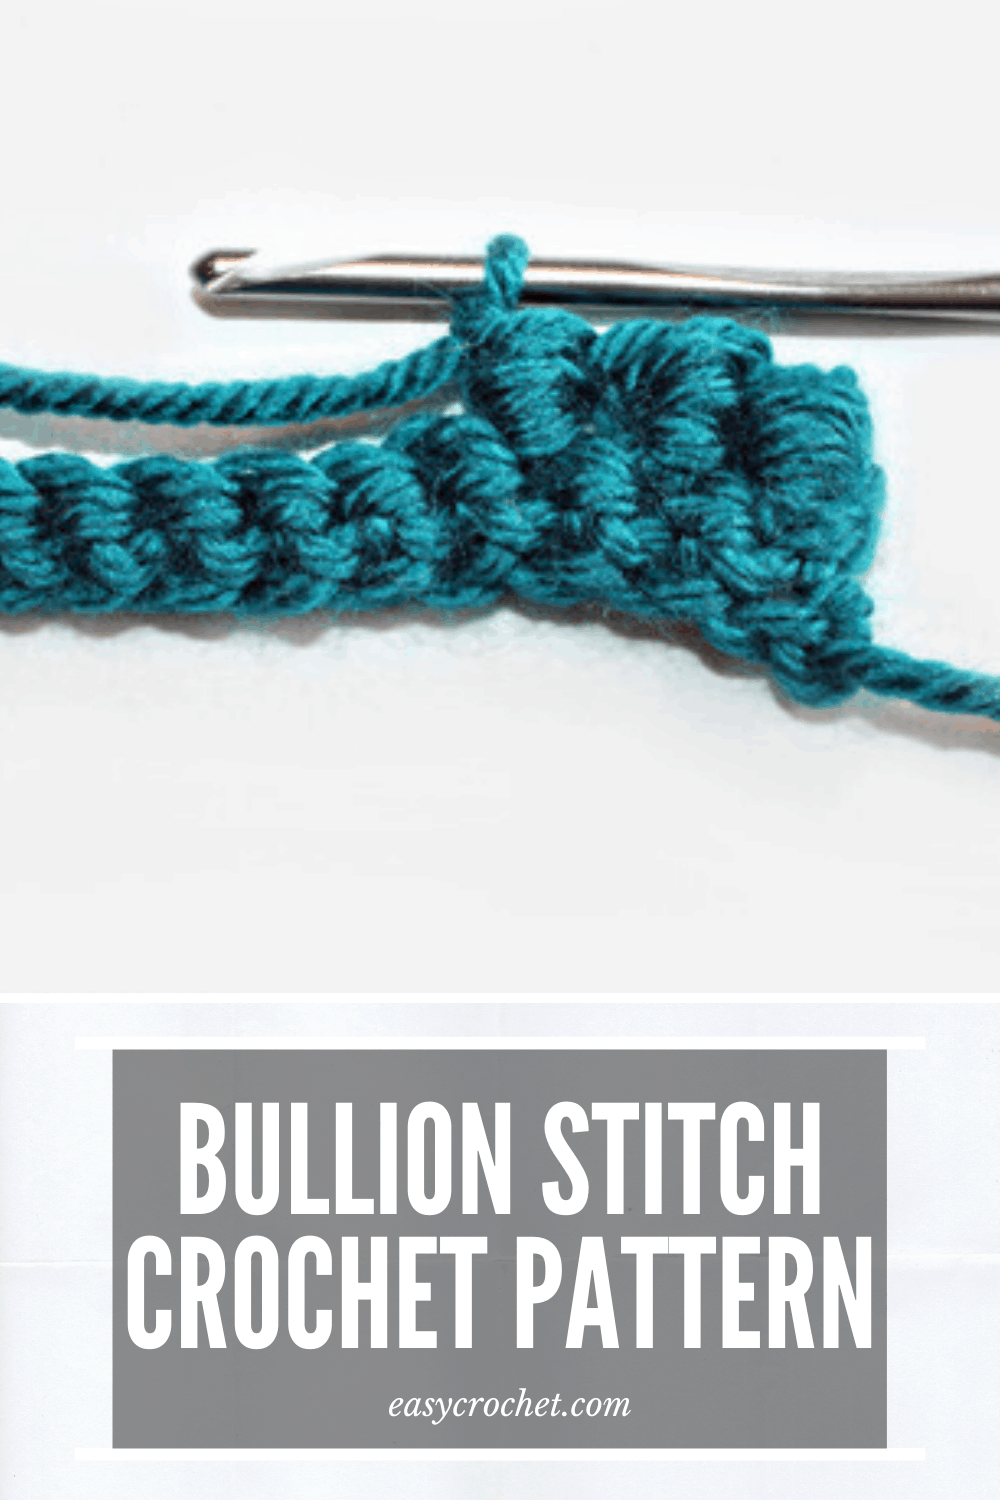 Bullion Stitch Crochet Tutorial